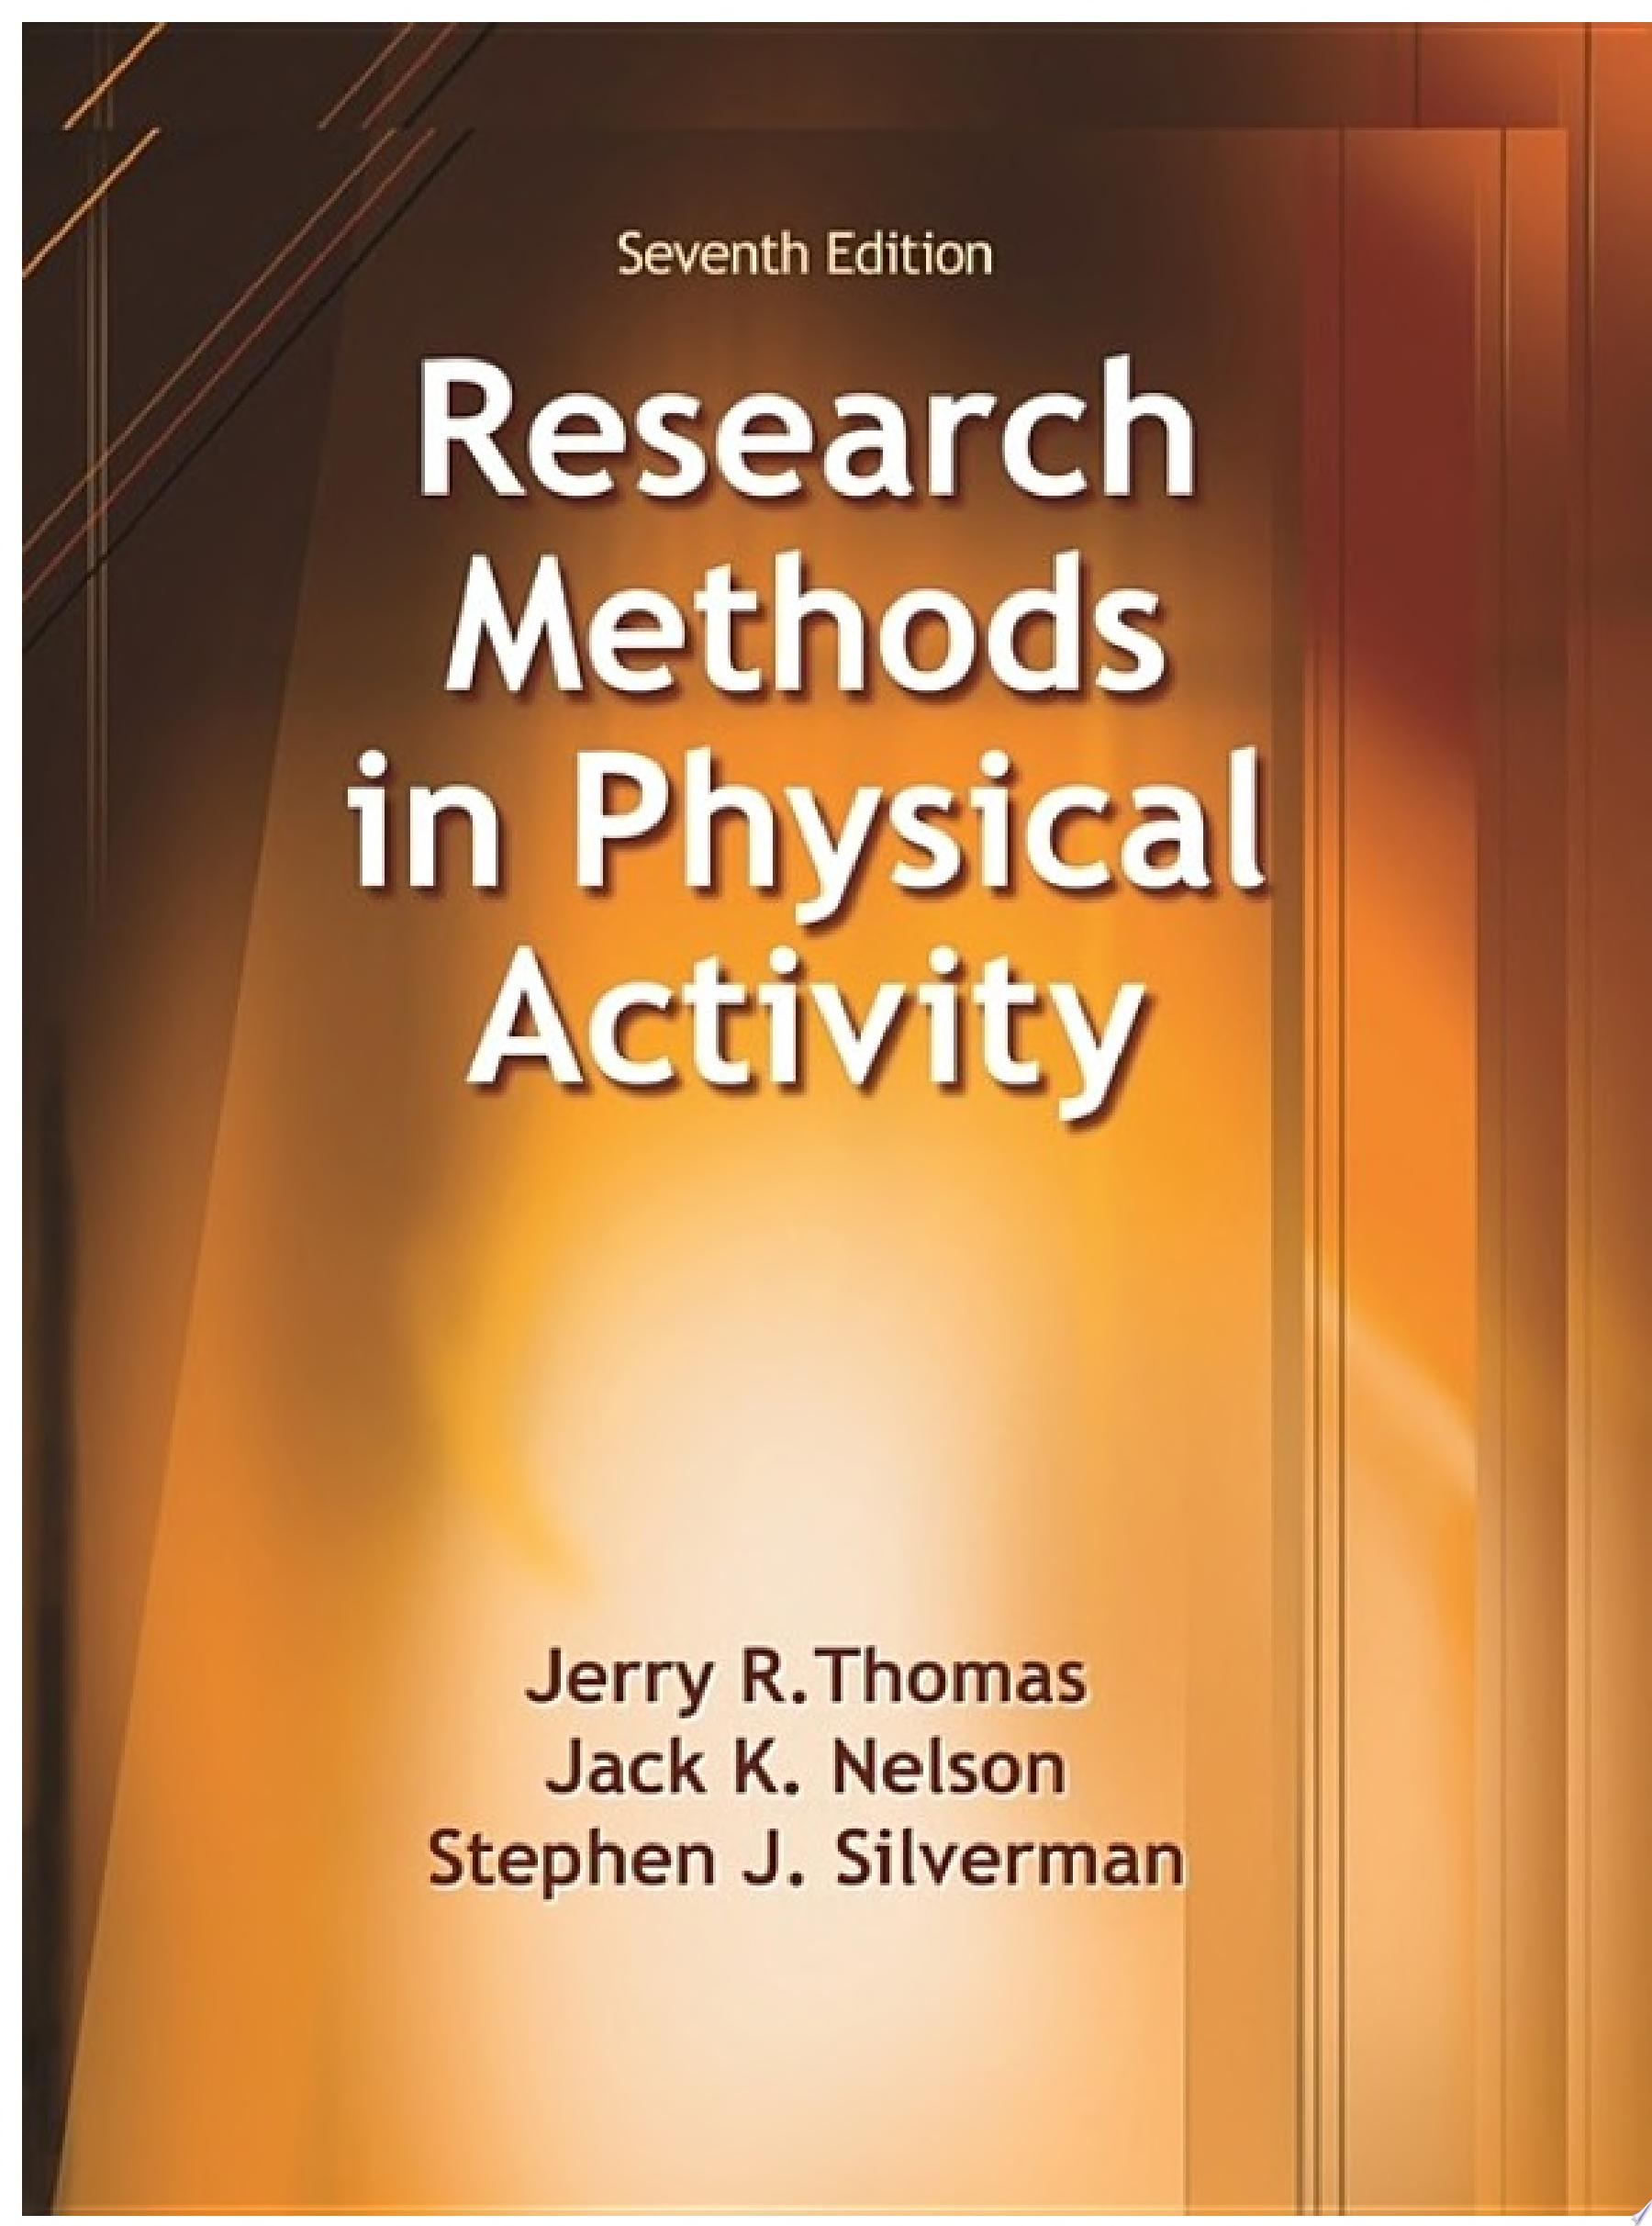 Research Methods in Physical Activity 7th Edition